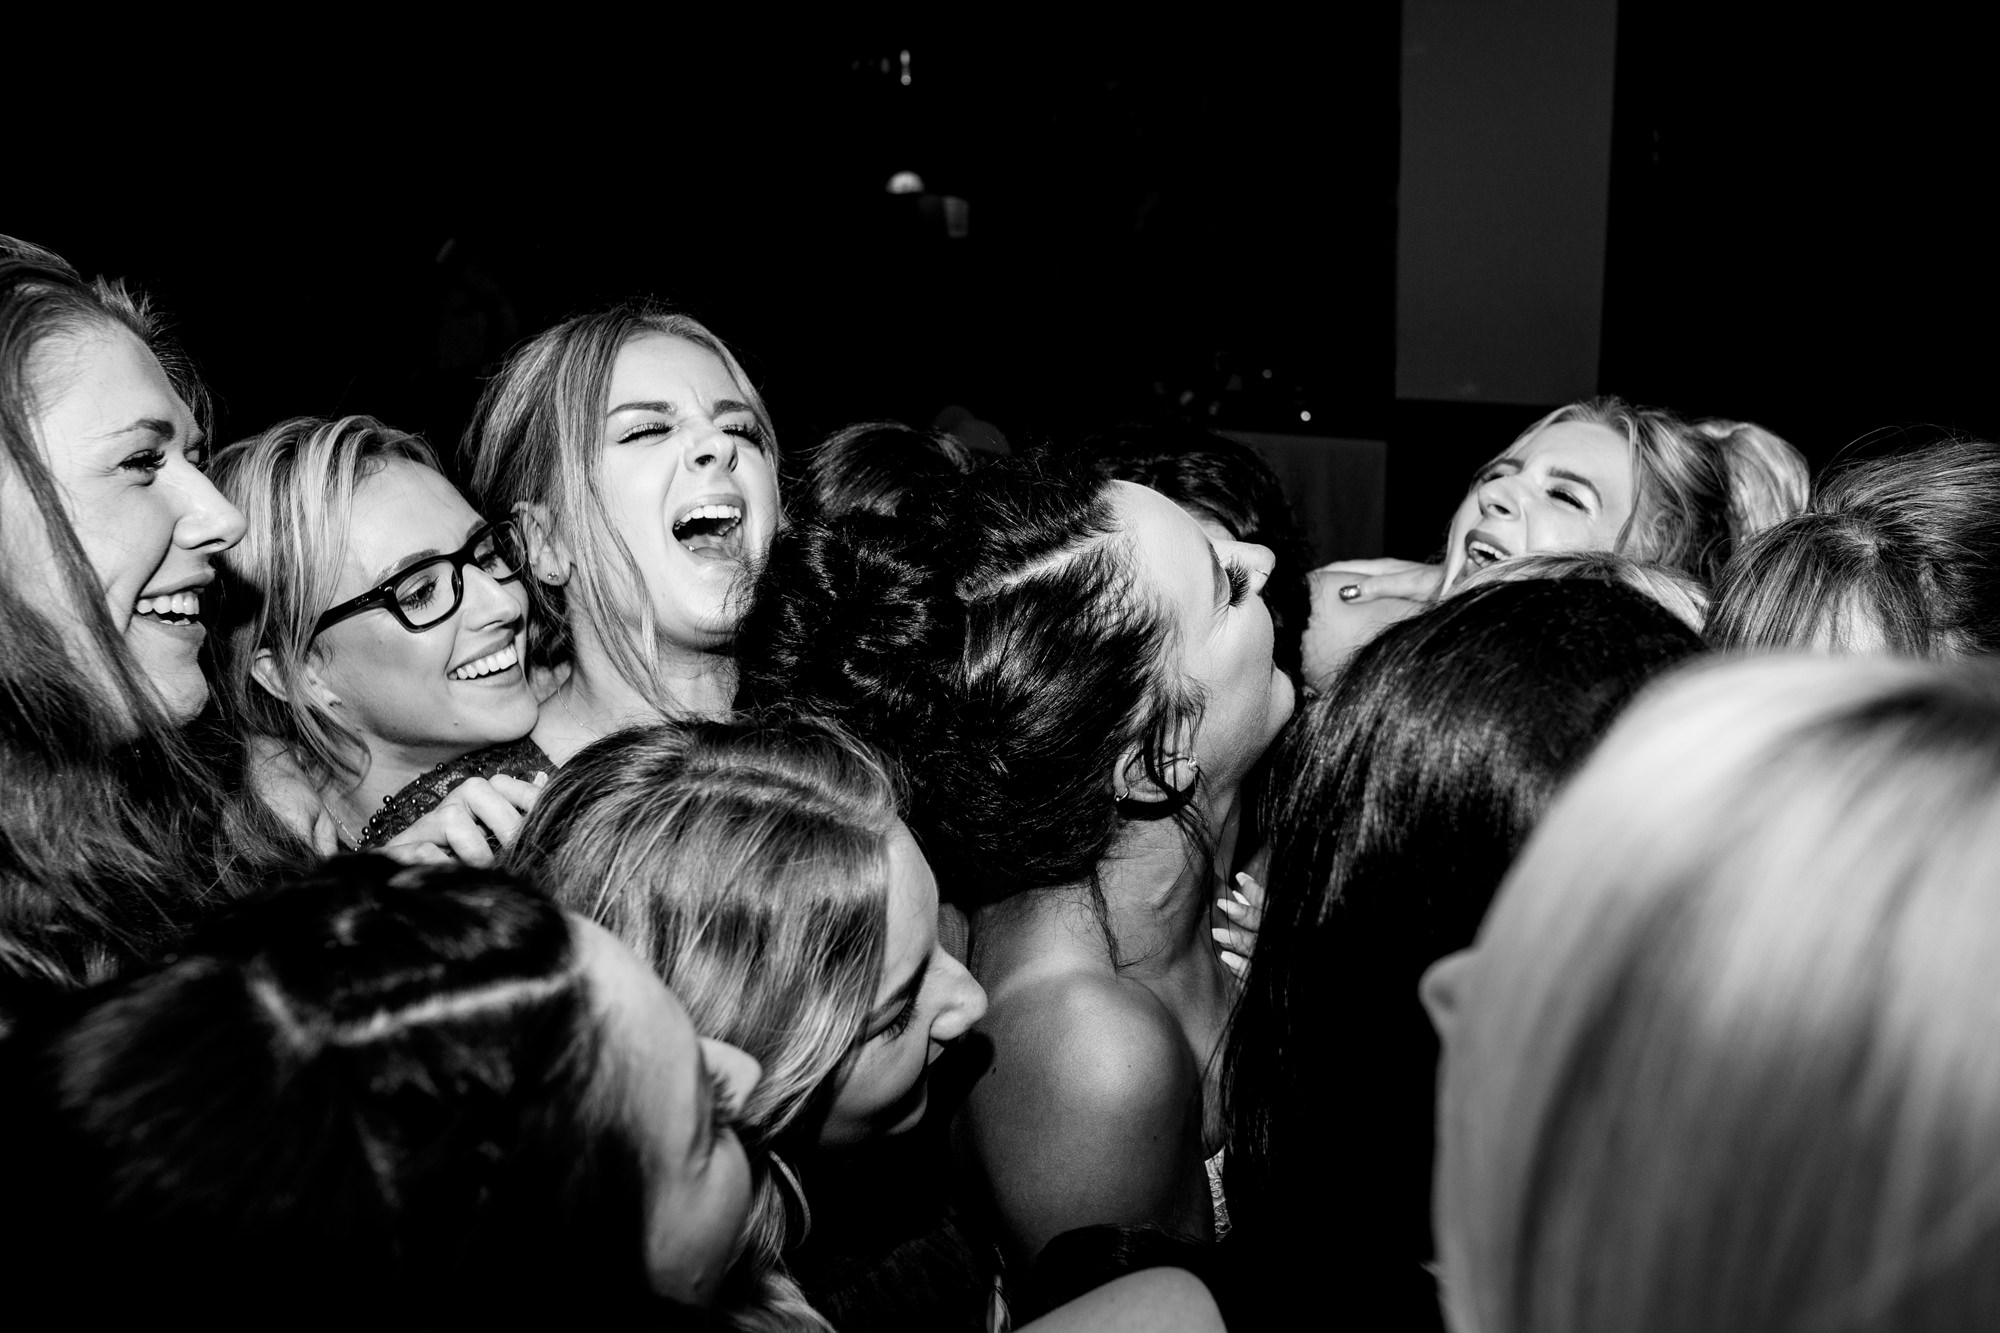 group hug with the bride in the middle. huntsman inn wedding photography by emma and rich.